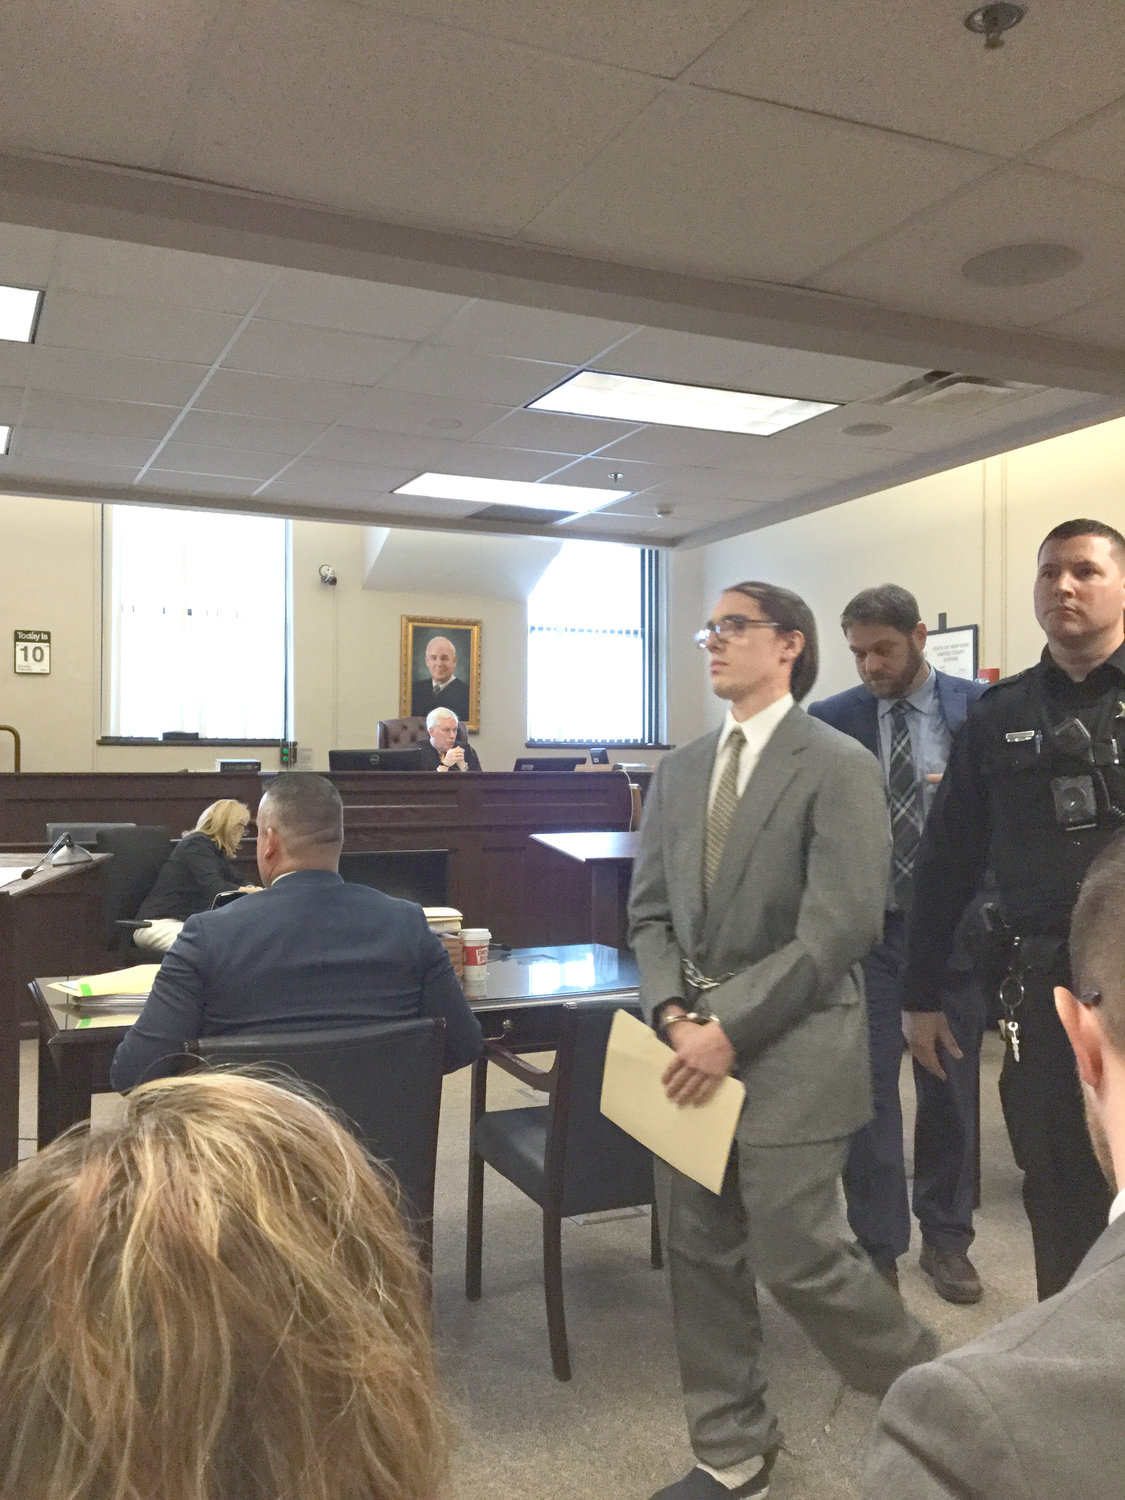 GUILTY PLEA — Brandon A. Clark admitted in County Court Monday morning to killing 17-year-old Bianca Devins, of Utica, by slashing her throat in the early morning hours of July 14.